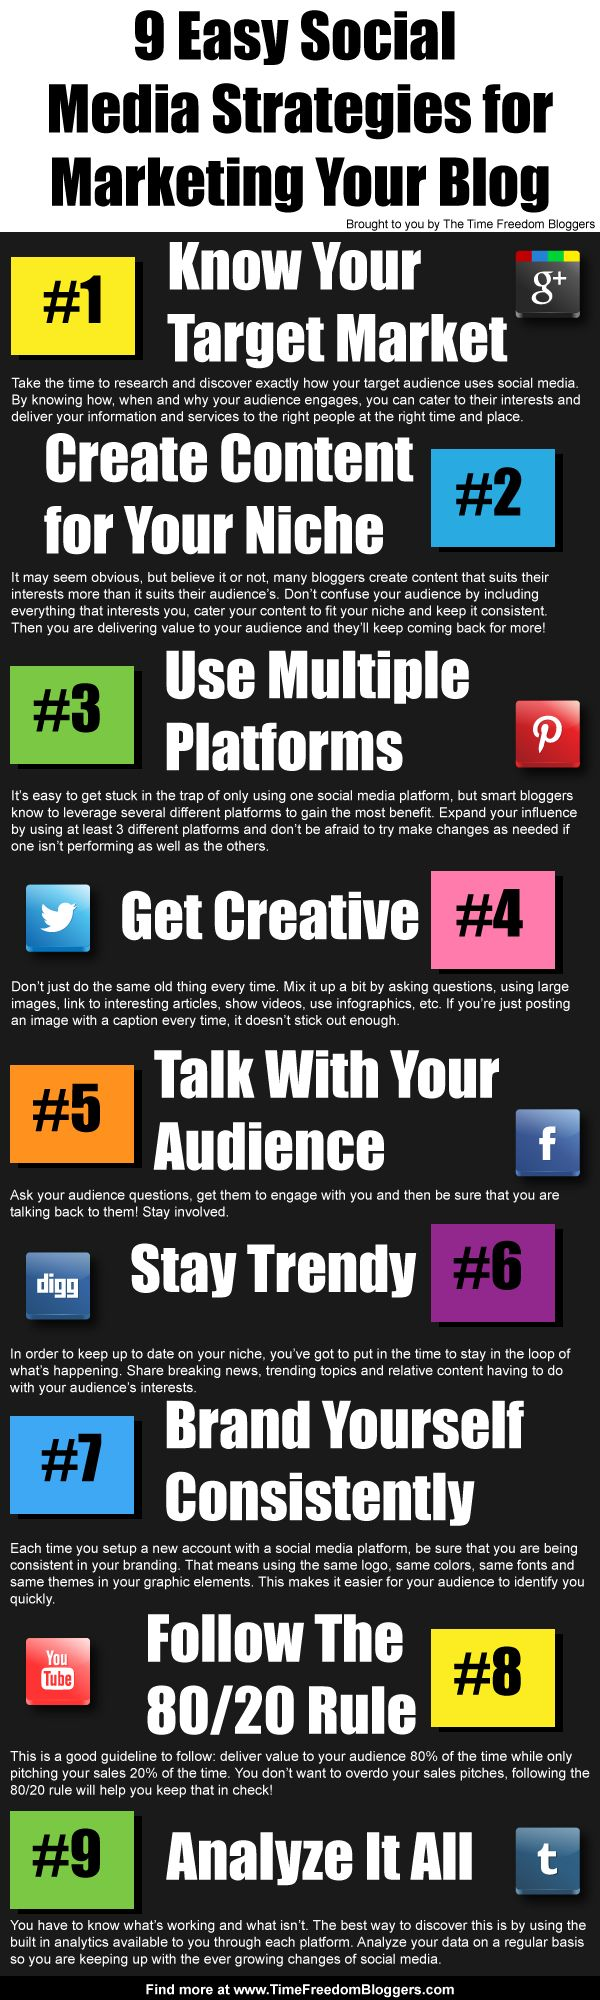 The importance of using social media to market your blog is growing and if you're not utilizing it correctly, then your blog could really be missing out. Follow these 9 quick and easy strategies to make the most out of your social media marketing and make way for the new traffic!